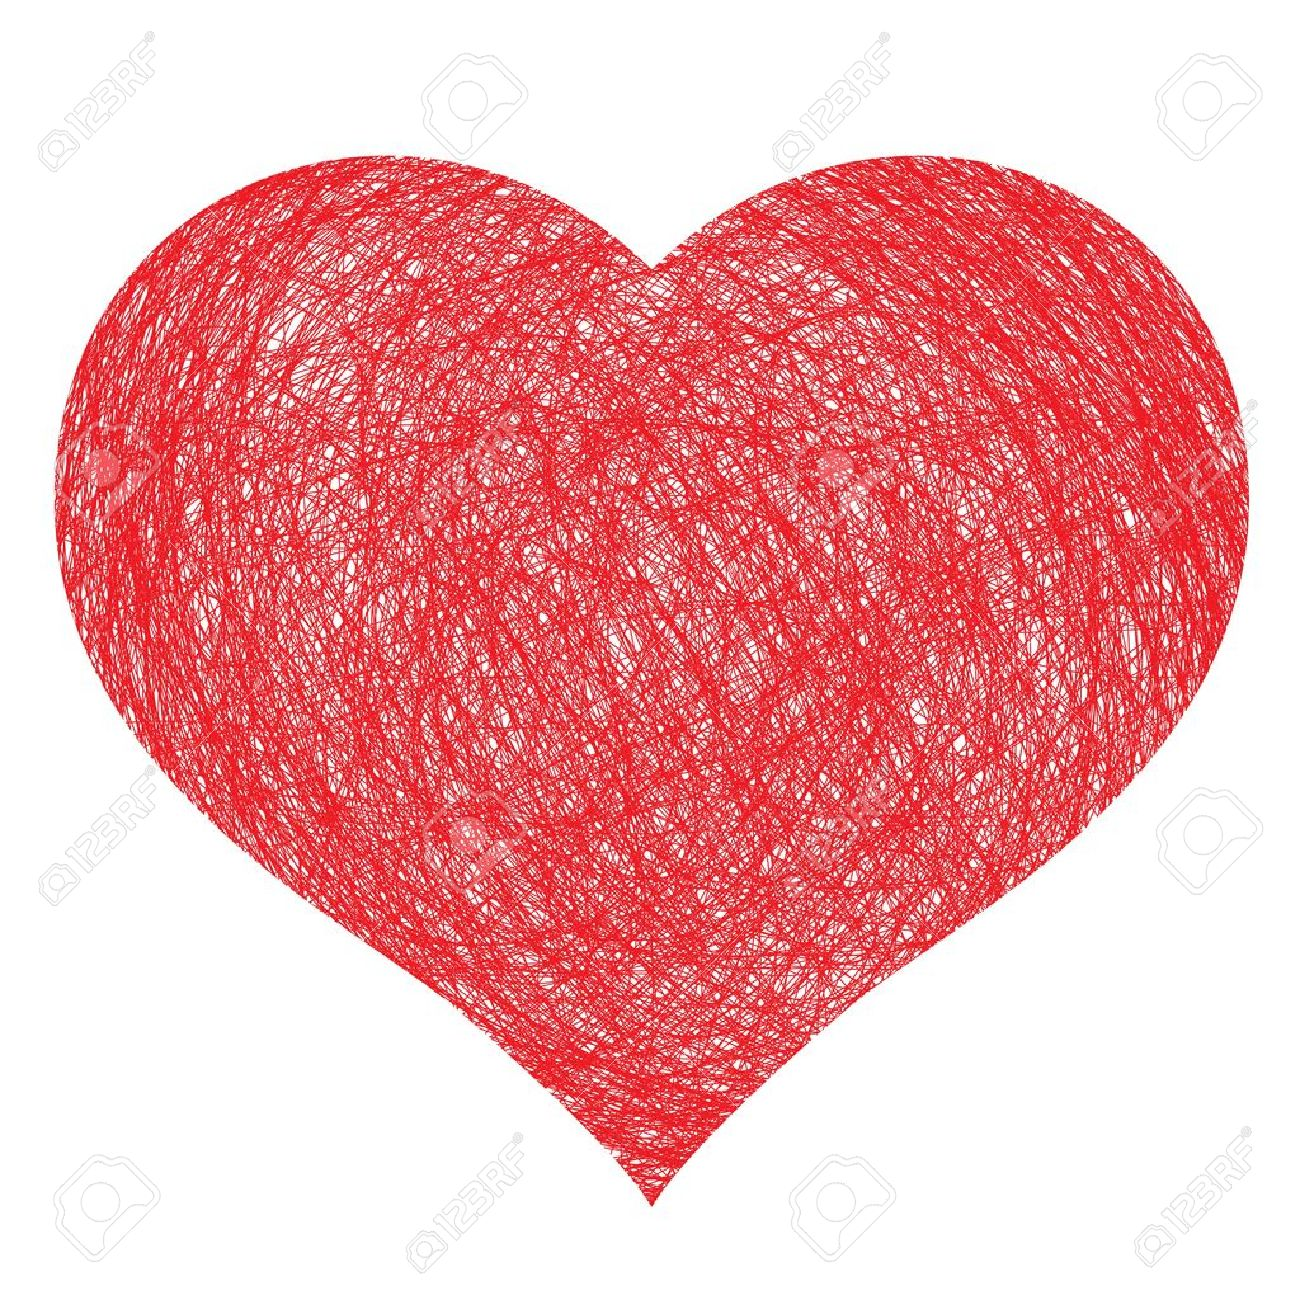 hand drawn heart,  illustration for design Stock Vector - 13519166